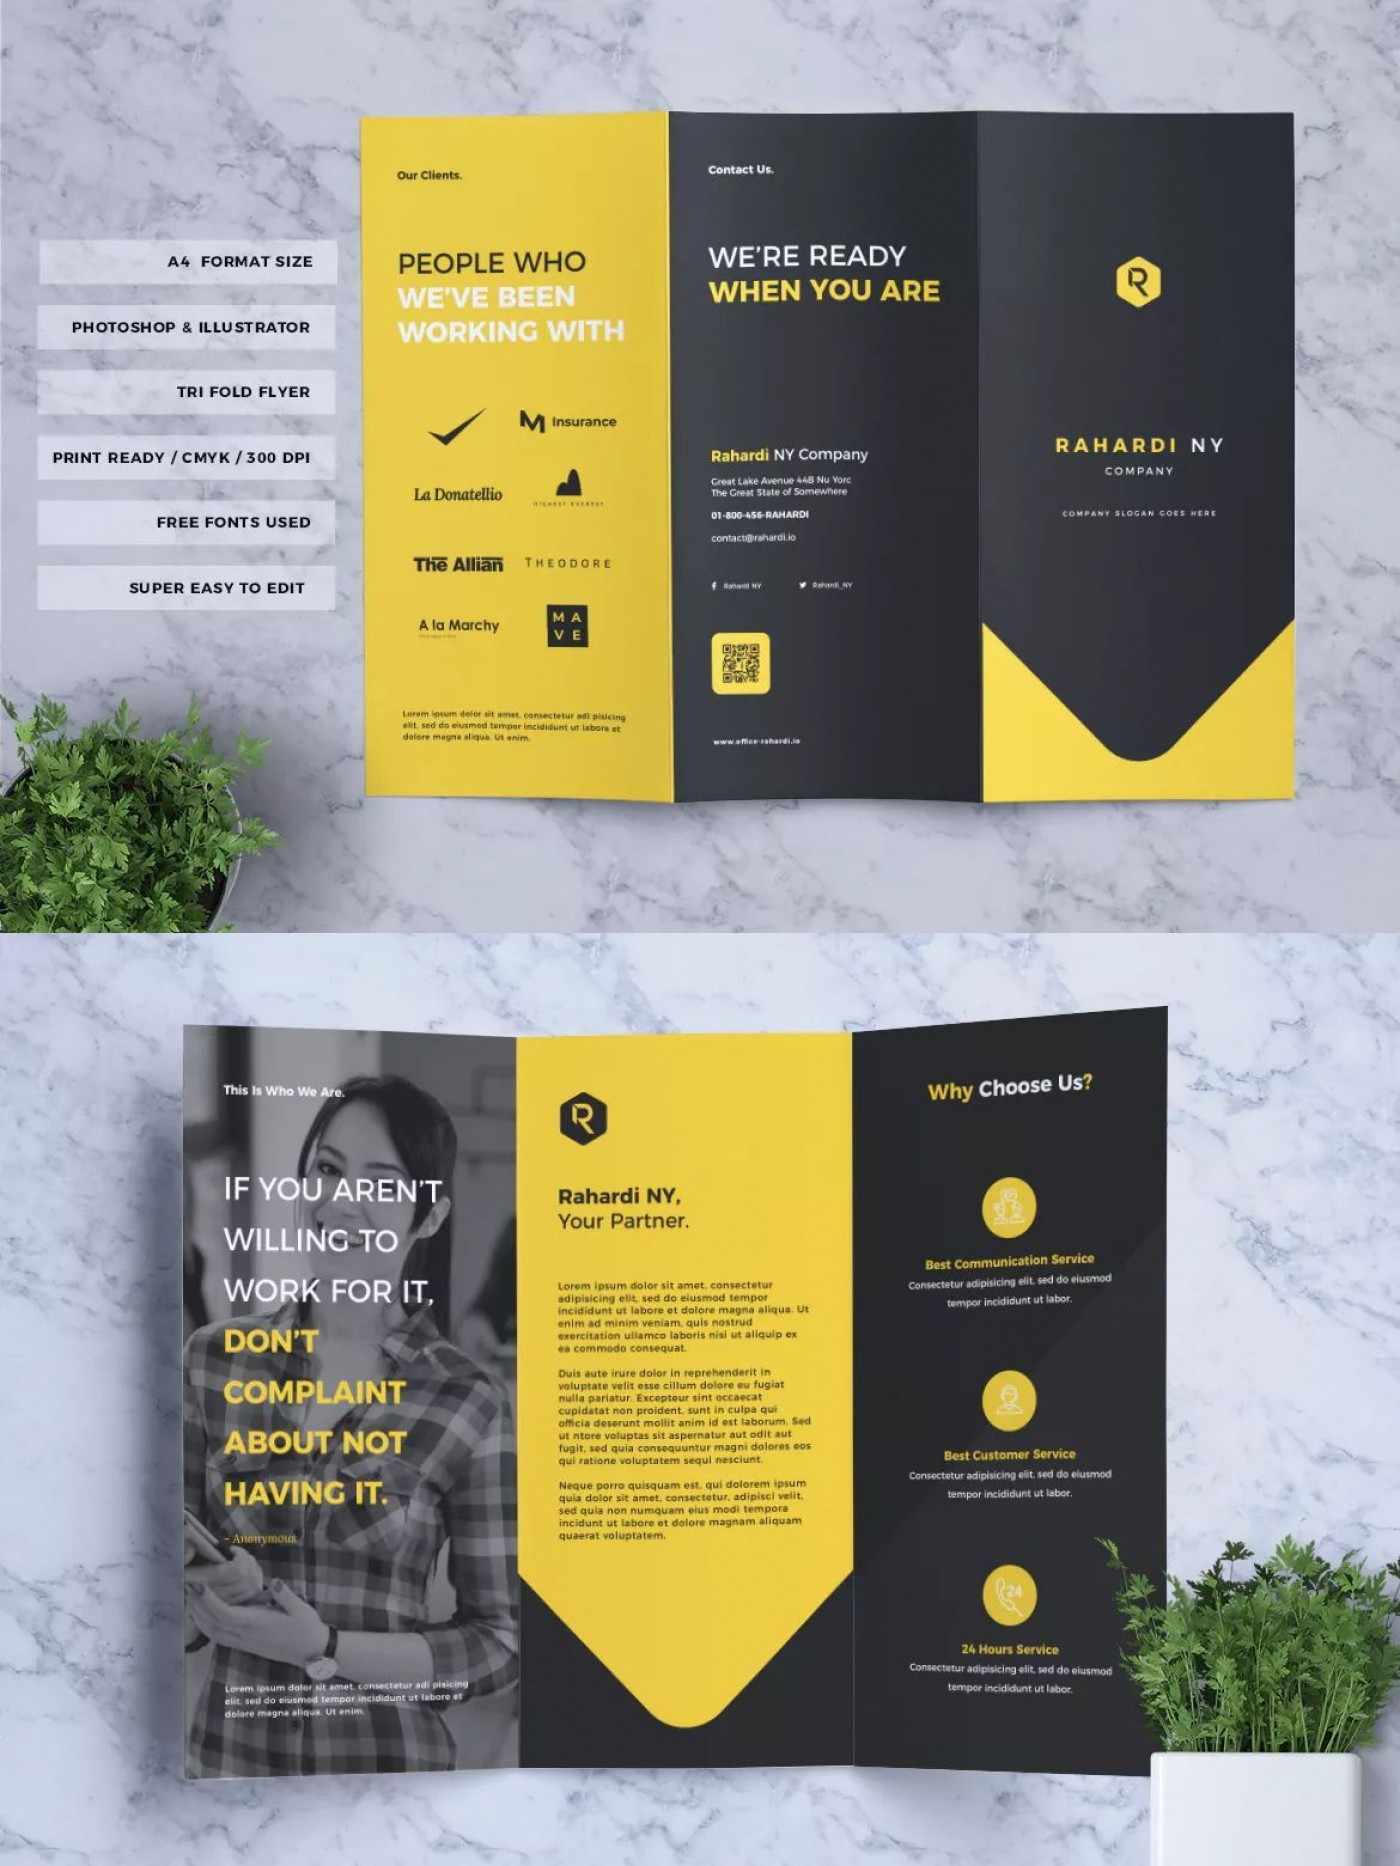 005 Fearsome Adobe Photoshop Brochure Template Free Download Design 1400